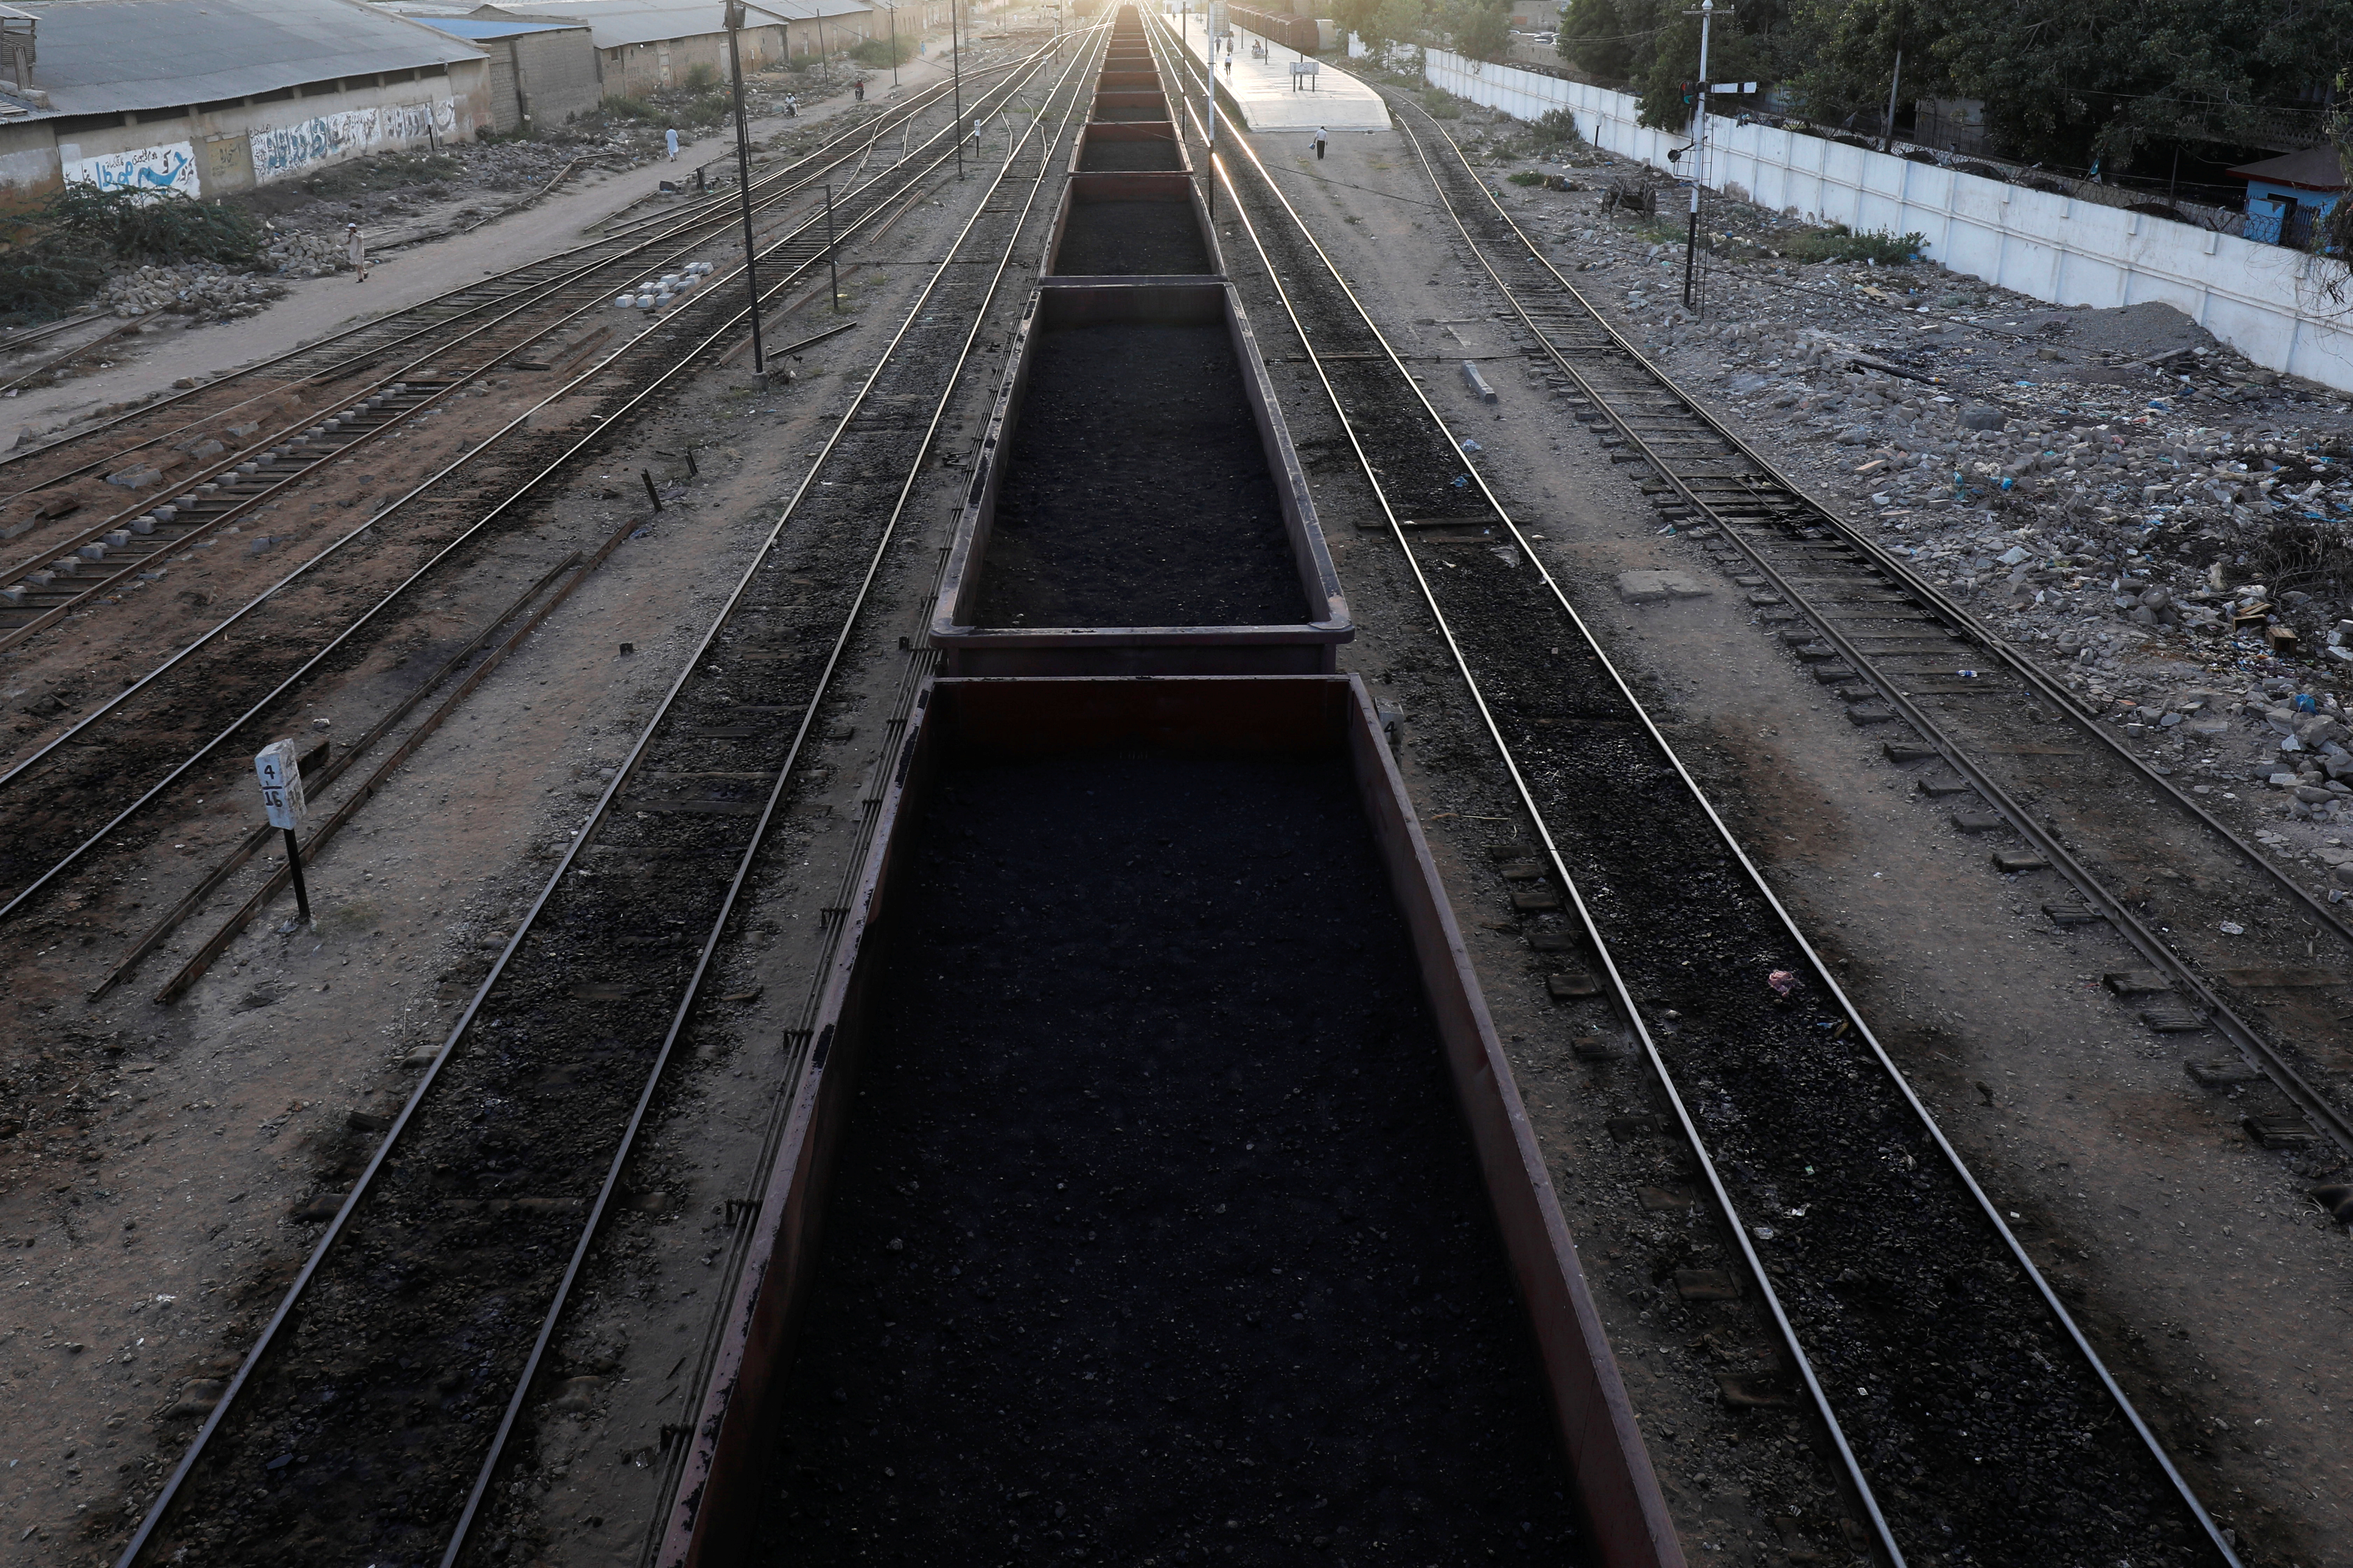 China coal investments unpopular in 'new Silk Road' nations: poll